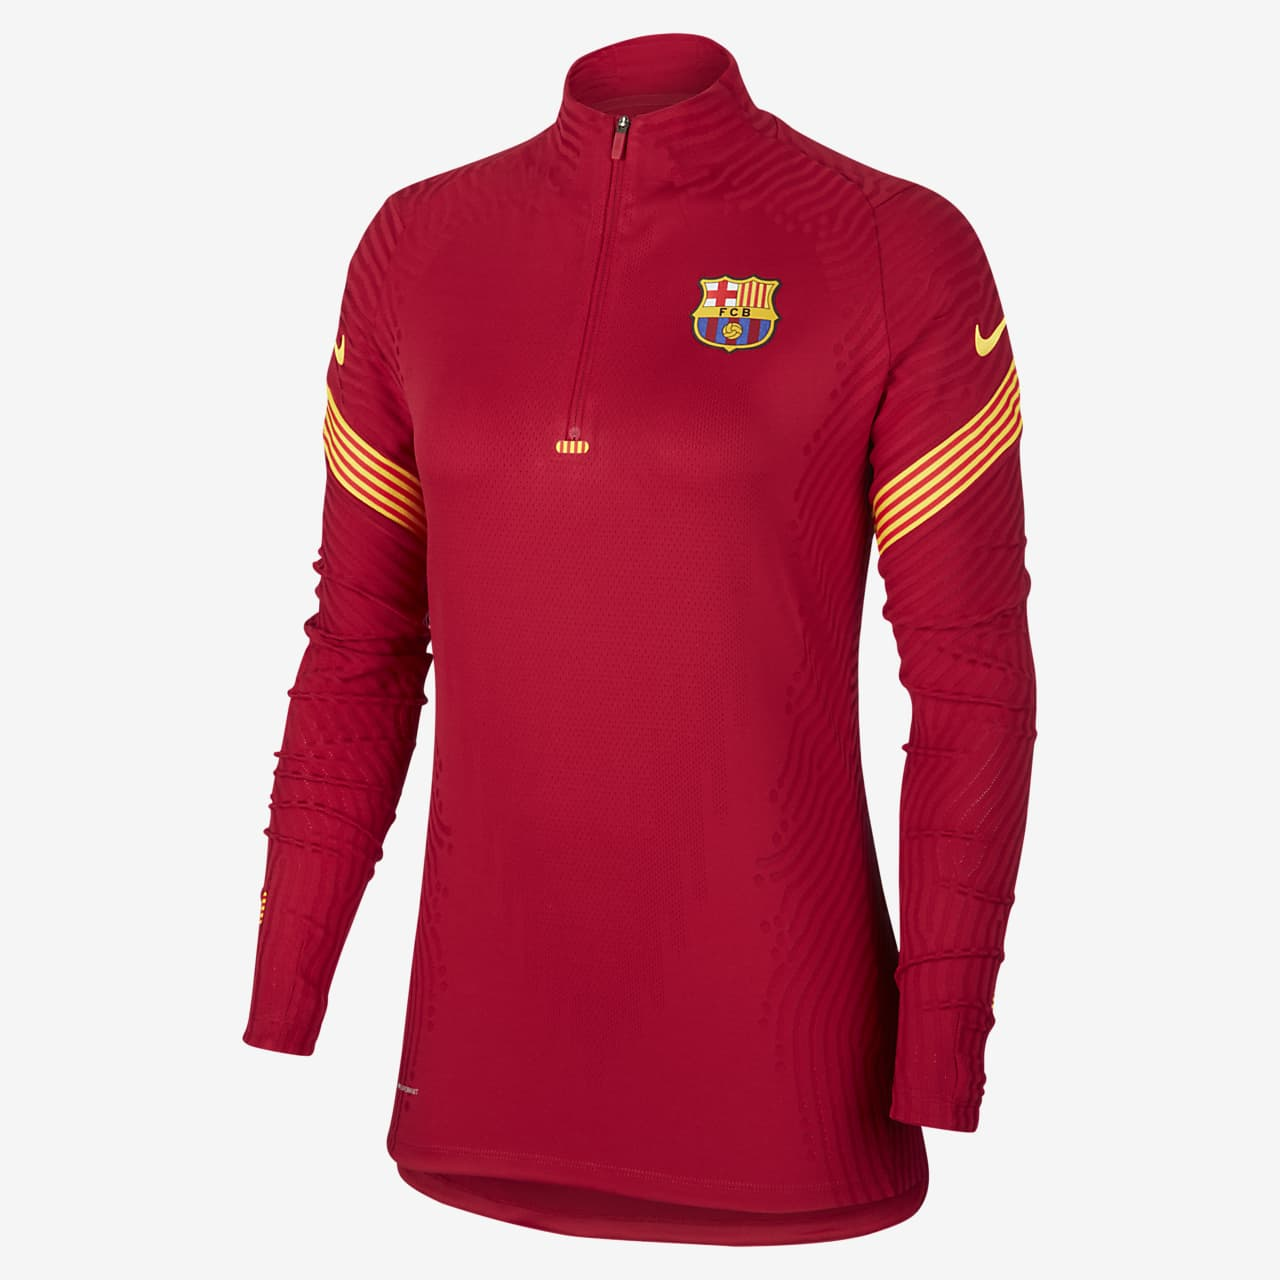 F.C. Barcelona VaporKnit Strike Women's Football Drill Top